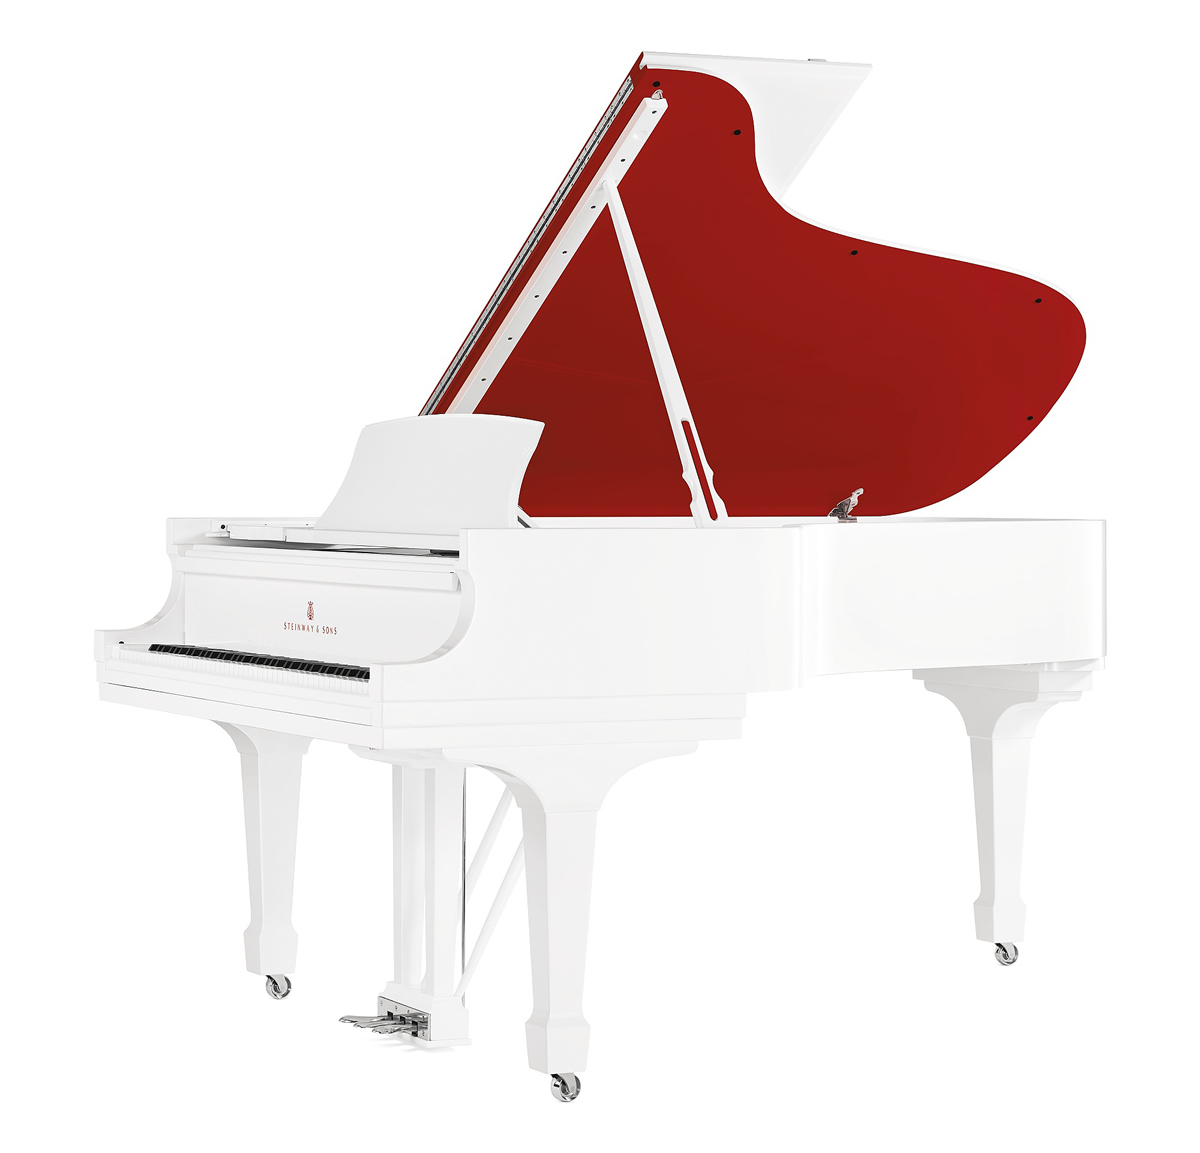 Parlor Grand Model A Steinway Piano incorporating design components hand-selected by Jony Ive and Marc Newson.